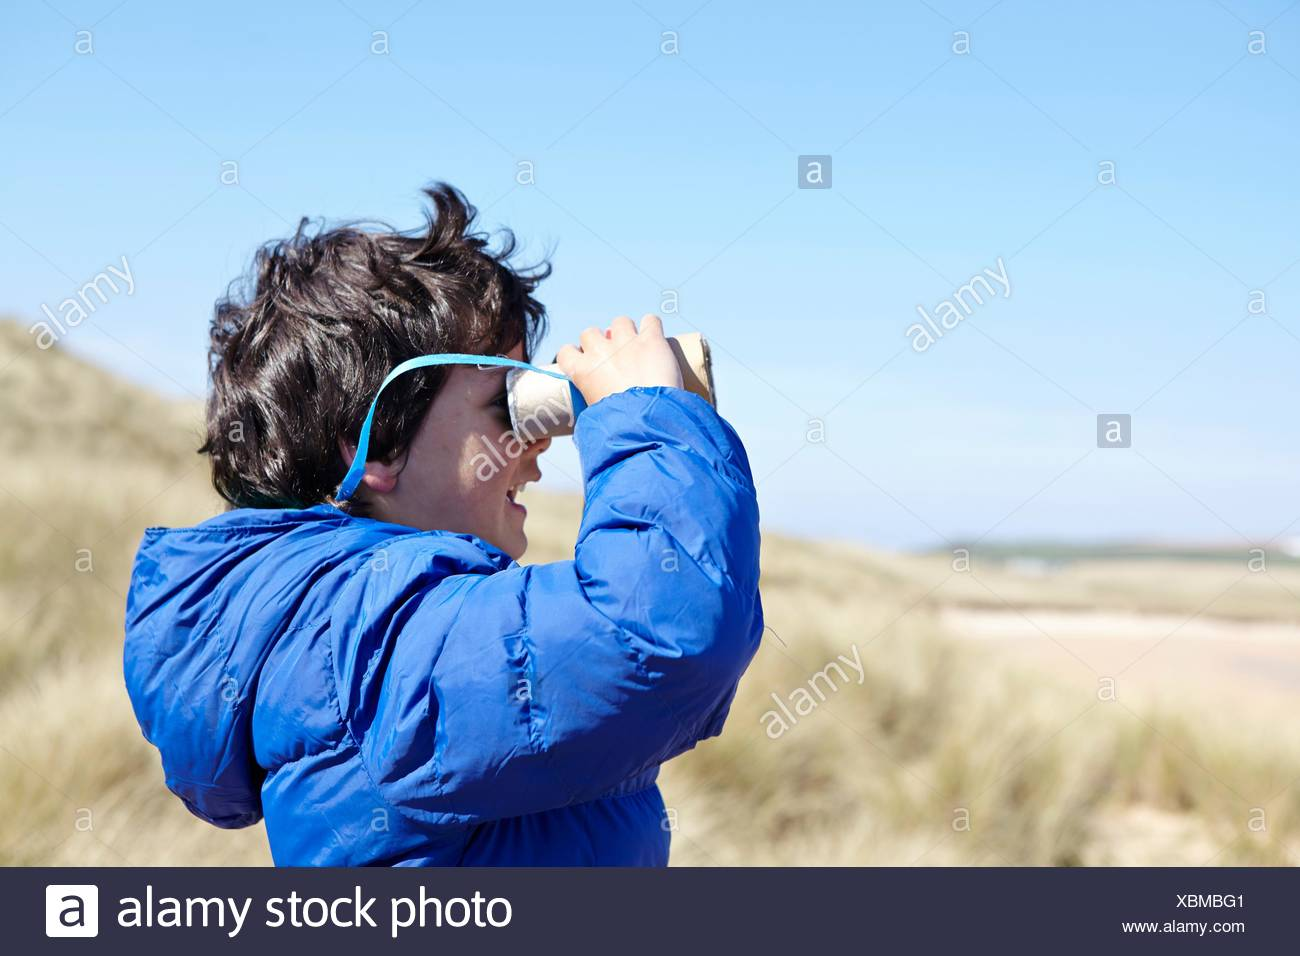 Young boy on beach, looking through pretend binoculars - Stock Image